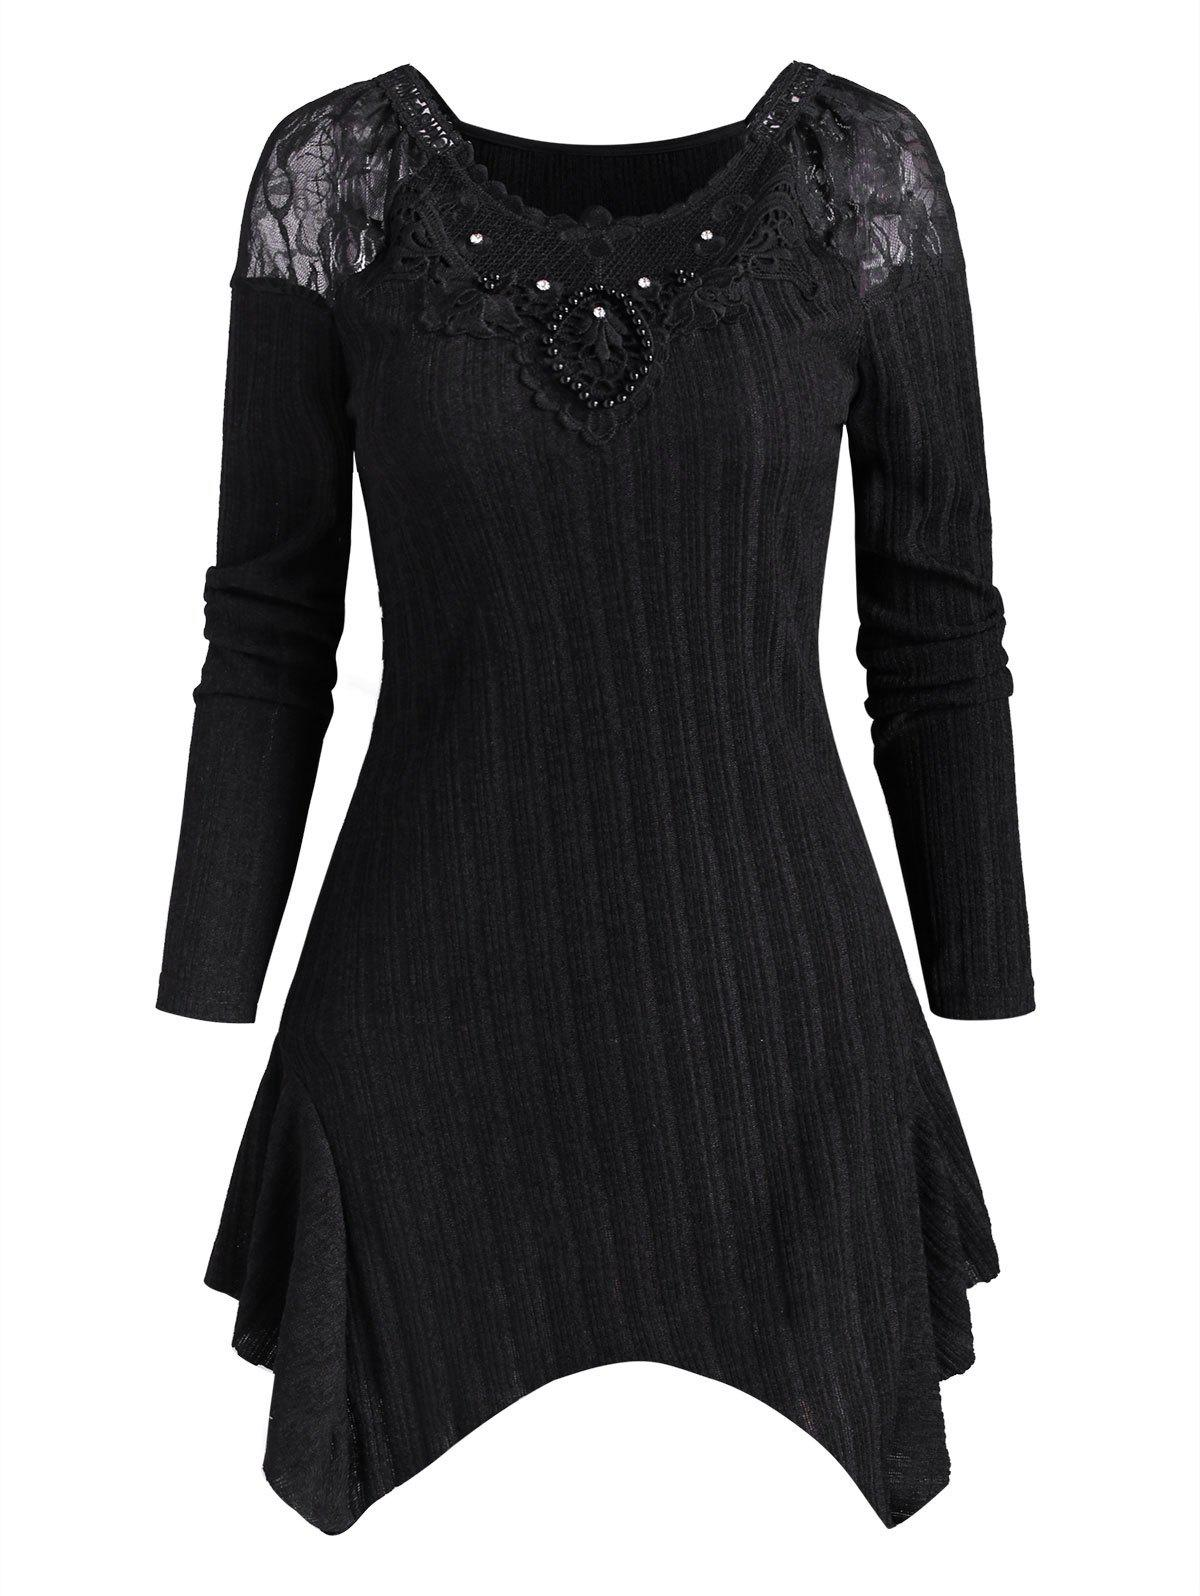 Unique Lace Panel Beaded Rhinestone Ribbed Knitwear